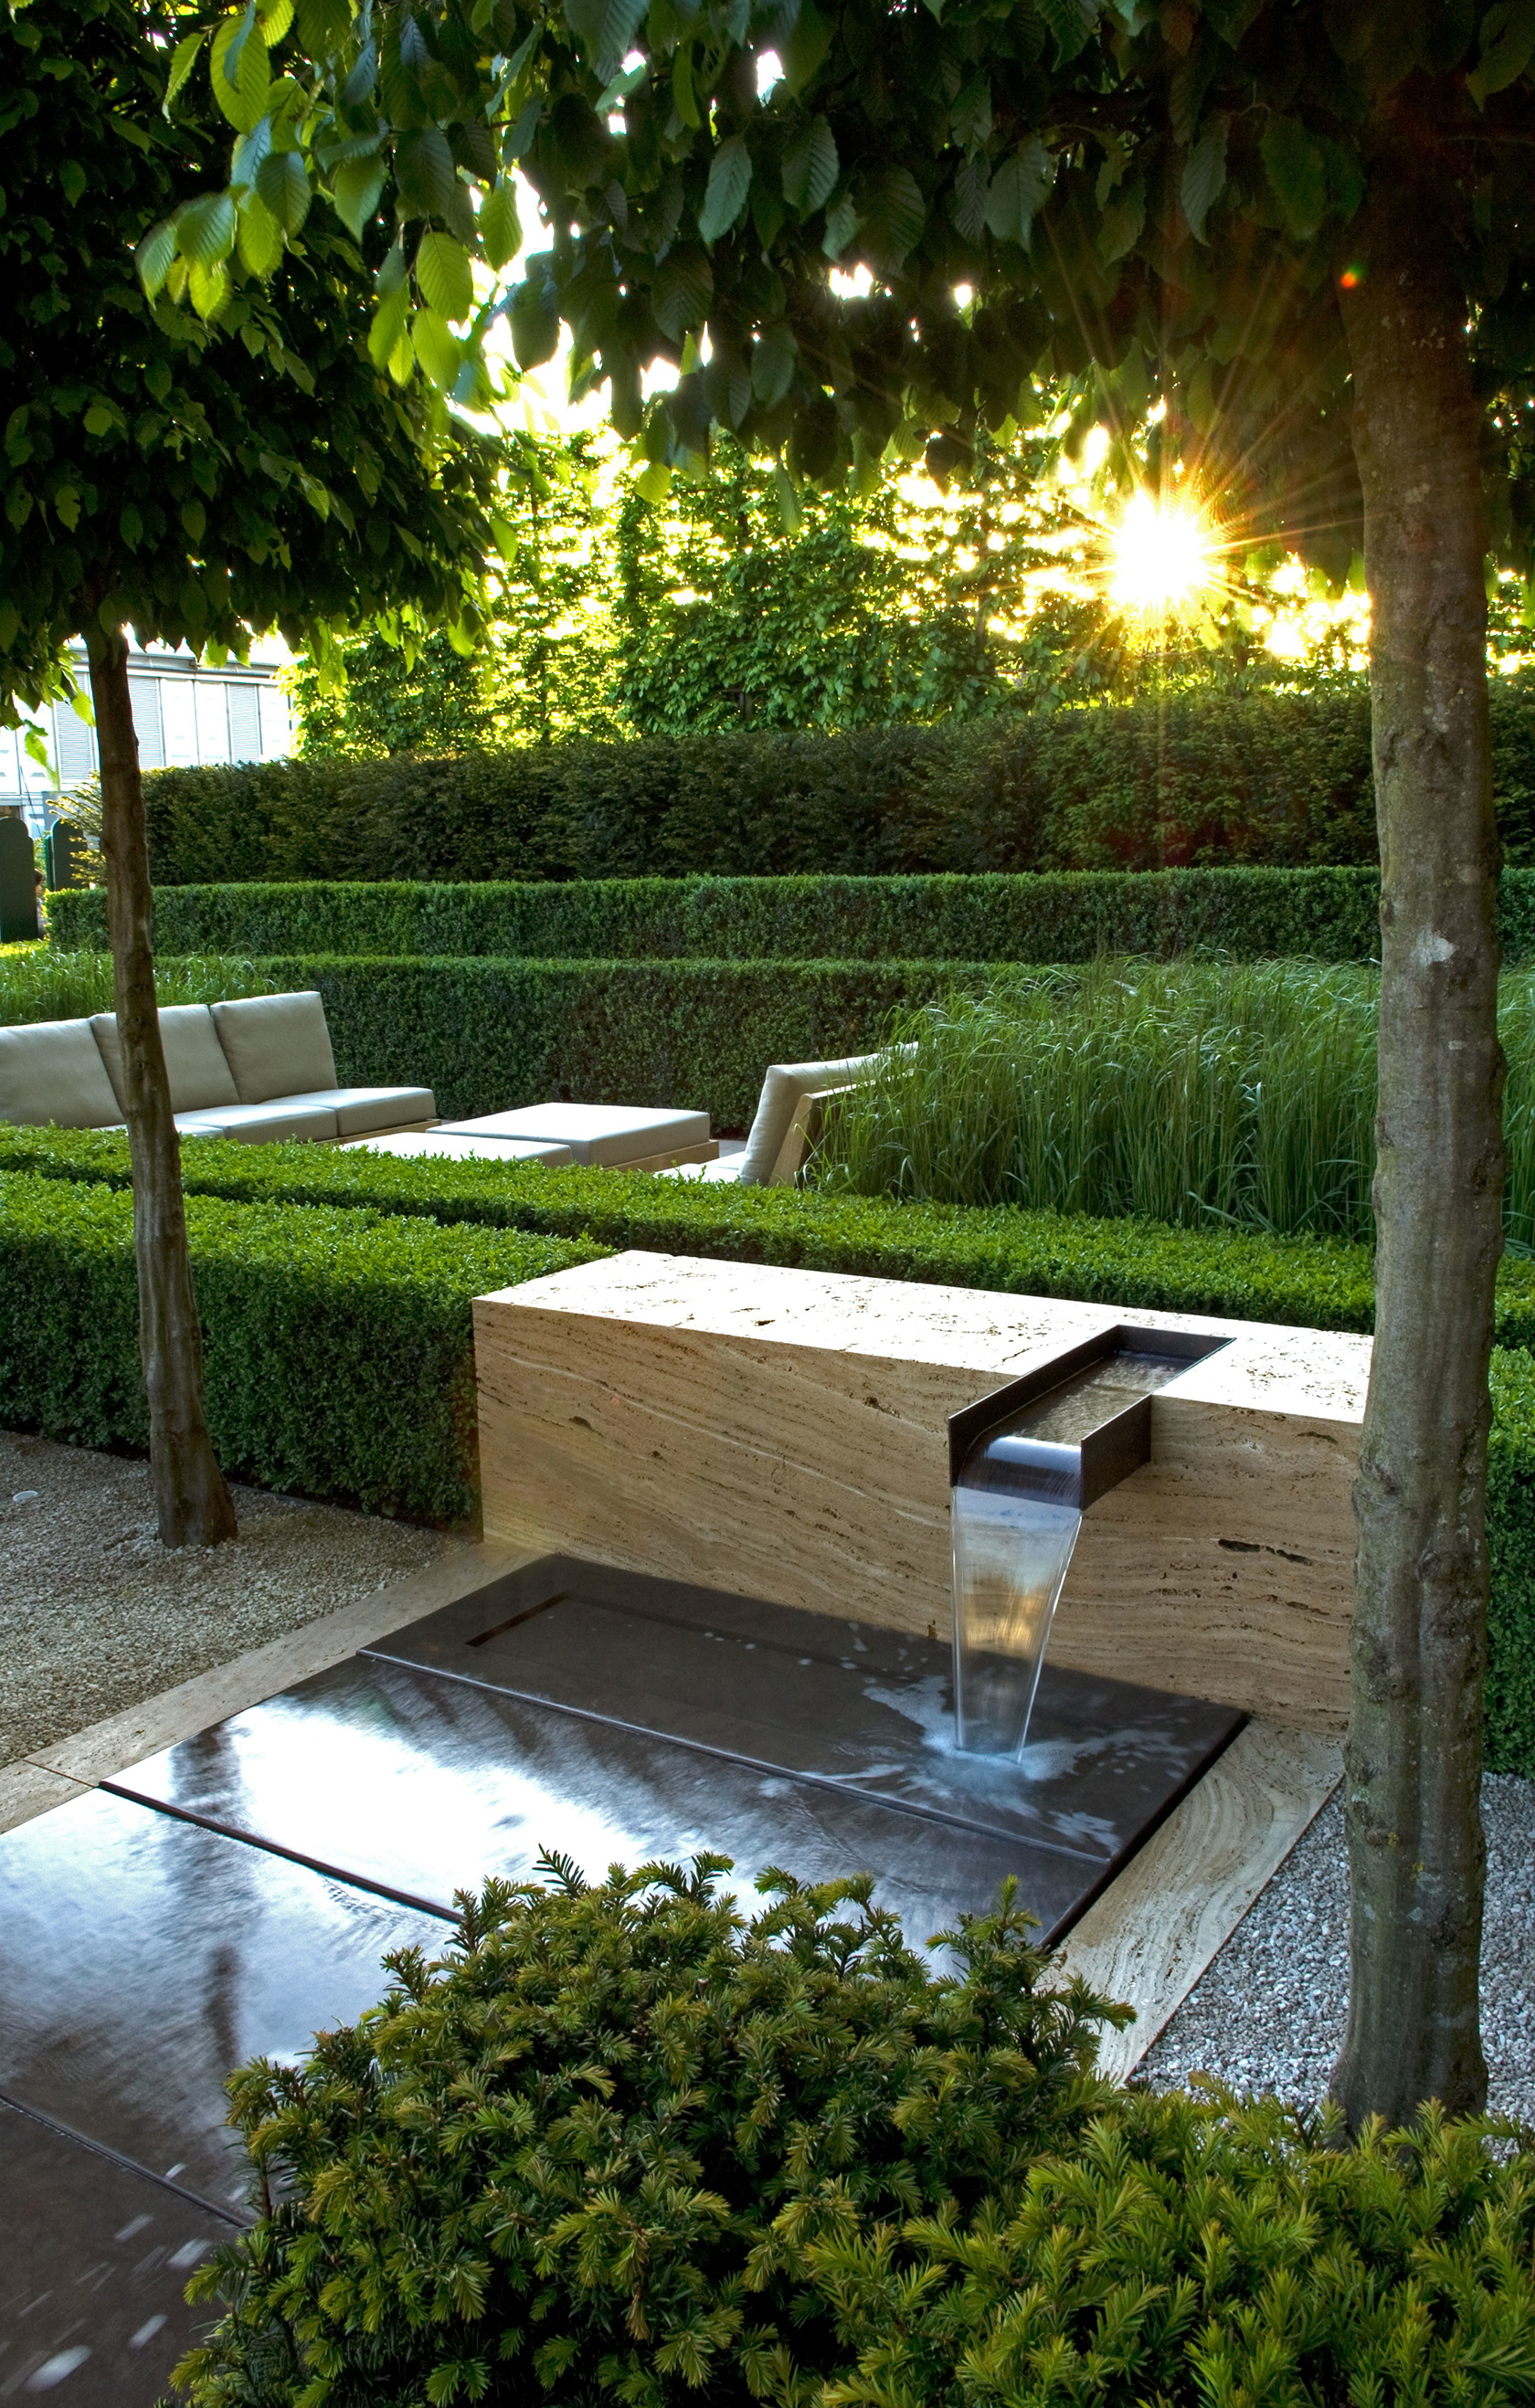 Contemporary Landscapes, Modern Gardens: Inspiration for ... on No Lawn Garden Ideas  id=92398